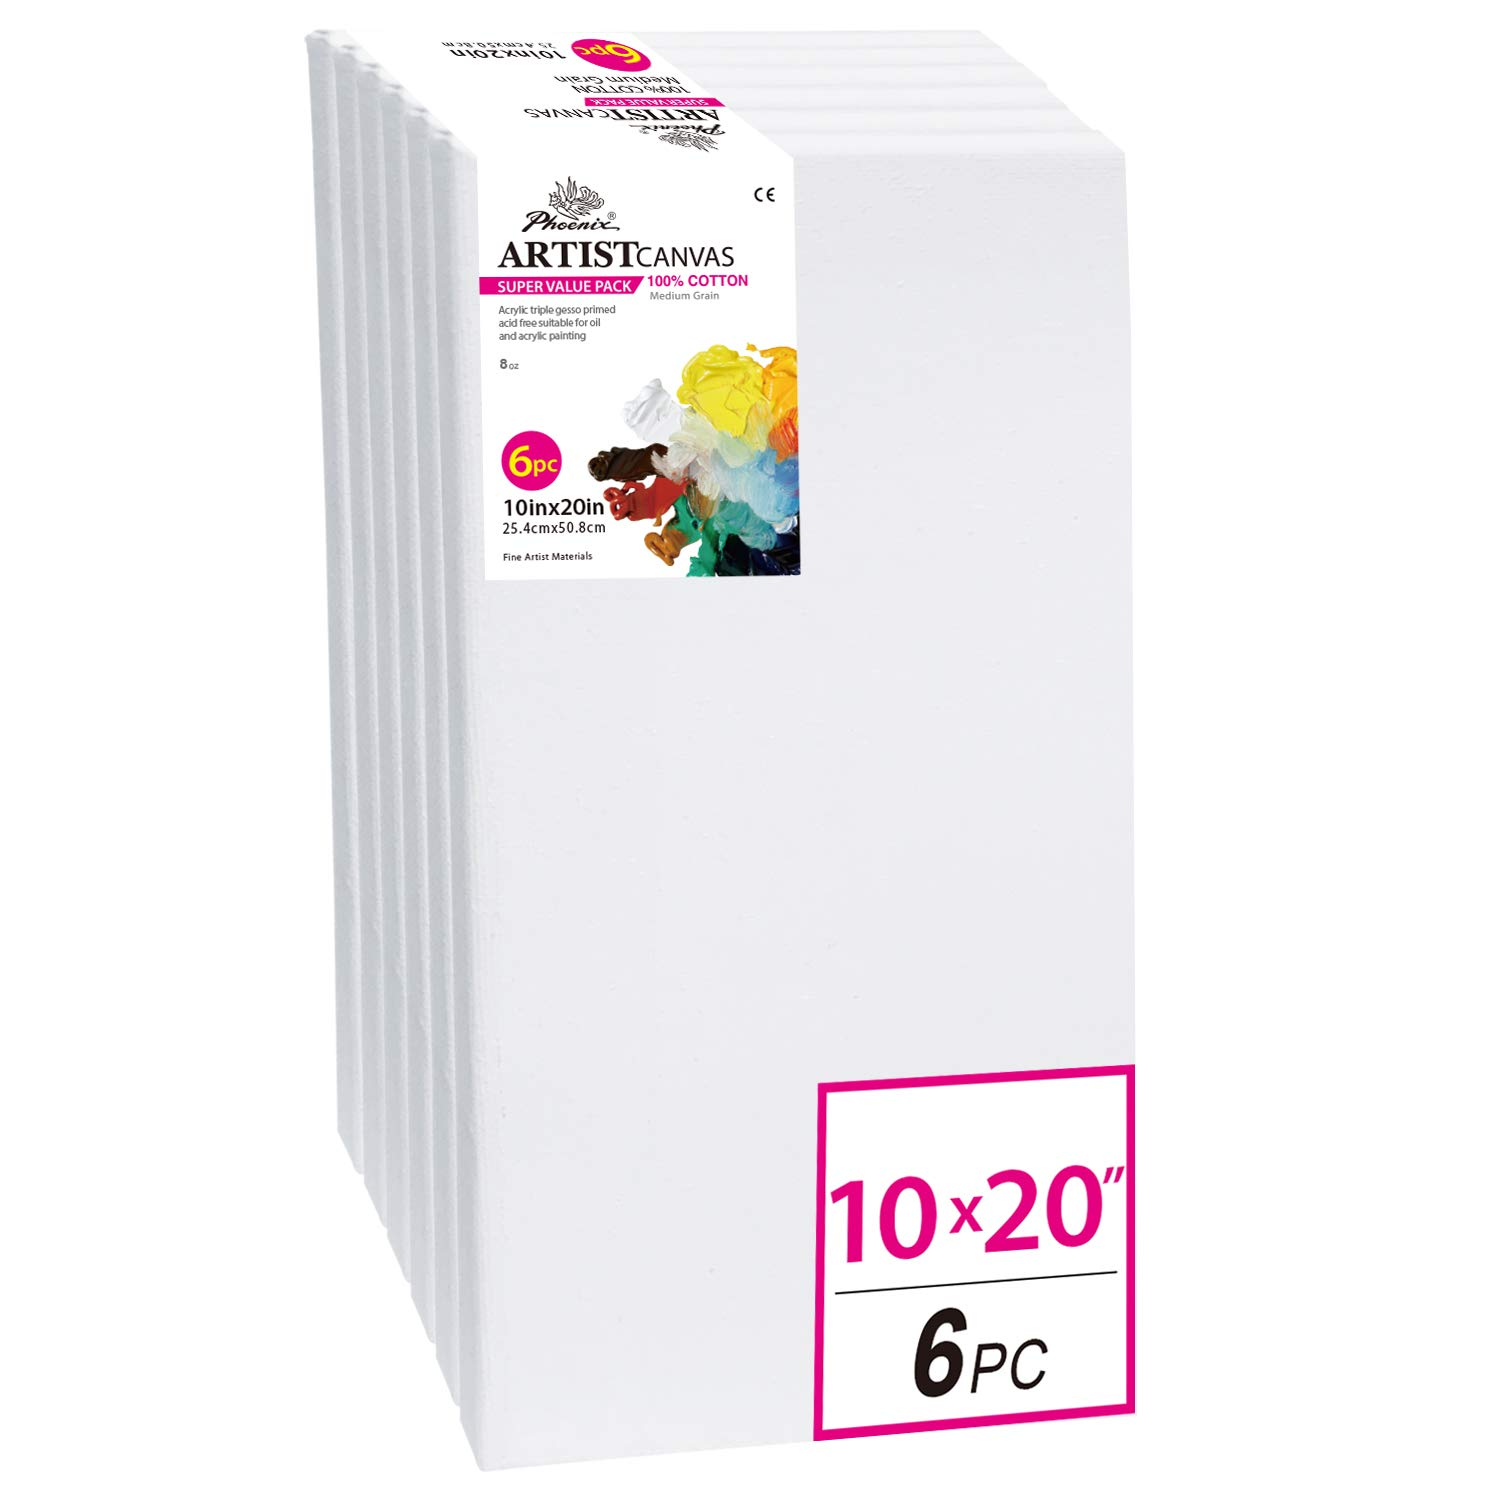 PHOENIX White Blank Cotton Stretched Canvas Artist Painting - 10x20 Inch / 6 Pack - 5/8 Inch Profile Triple Primed for Oil & Acrylic Paints